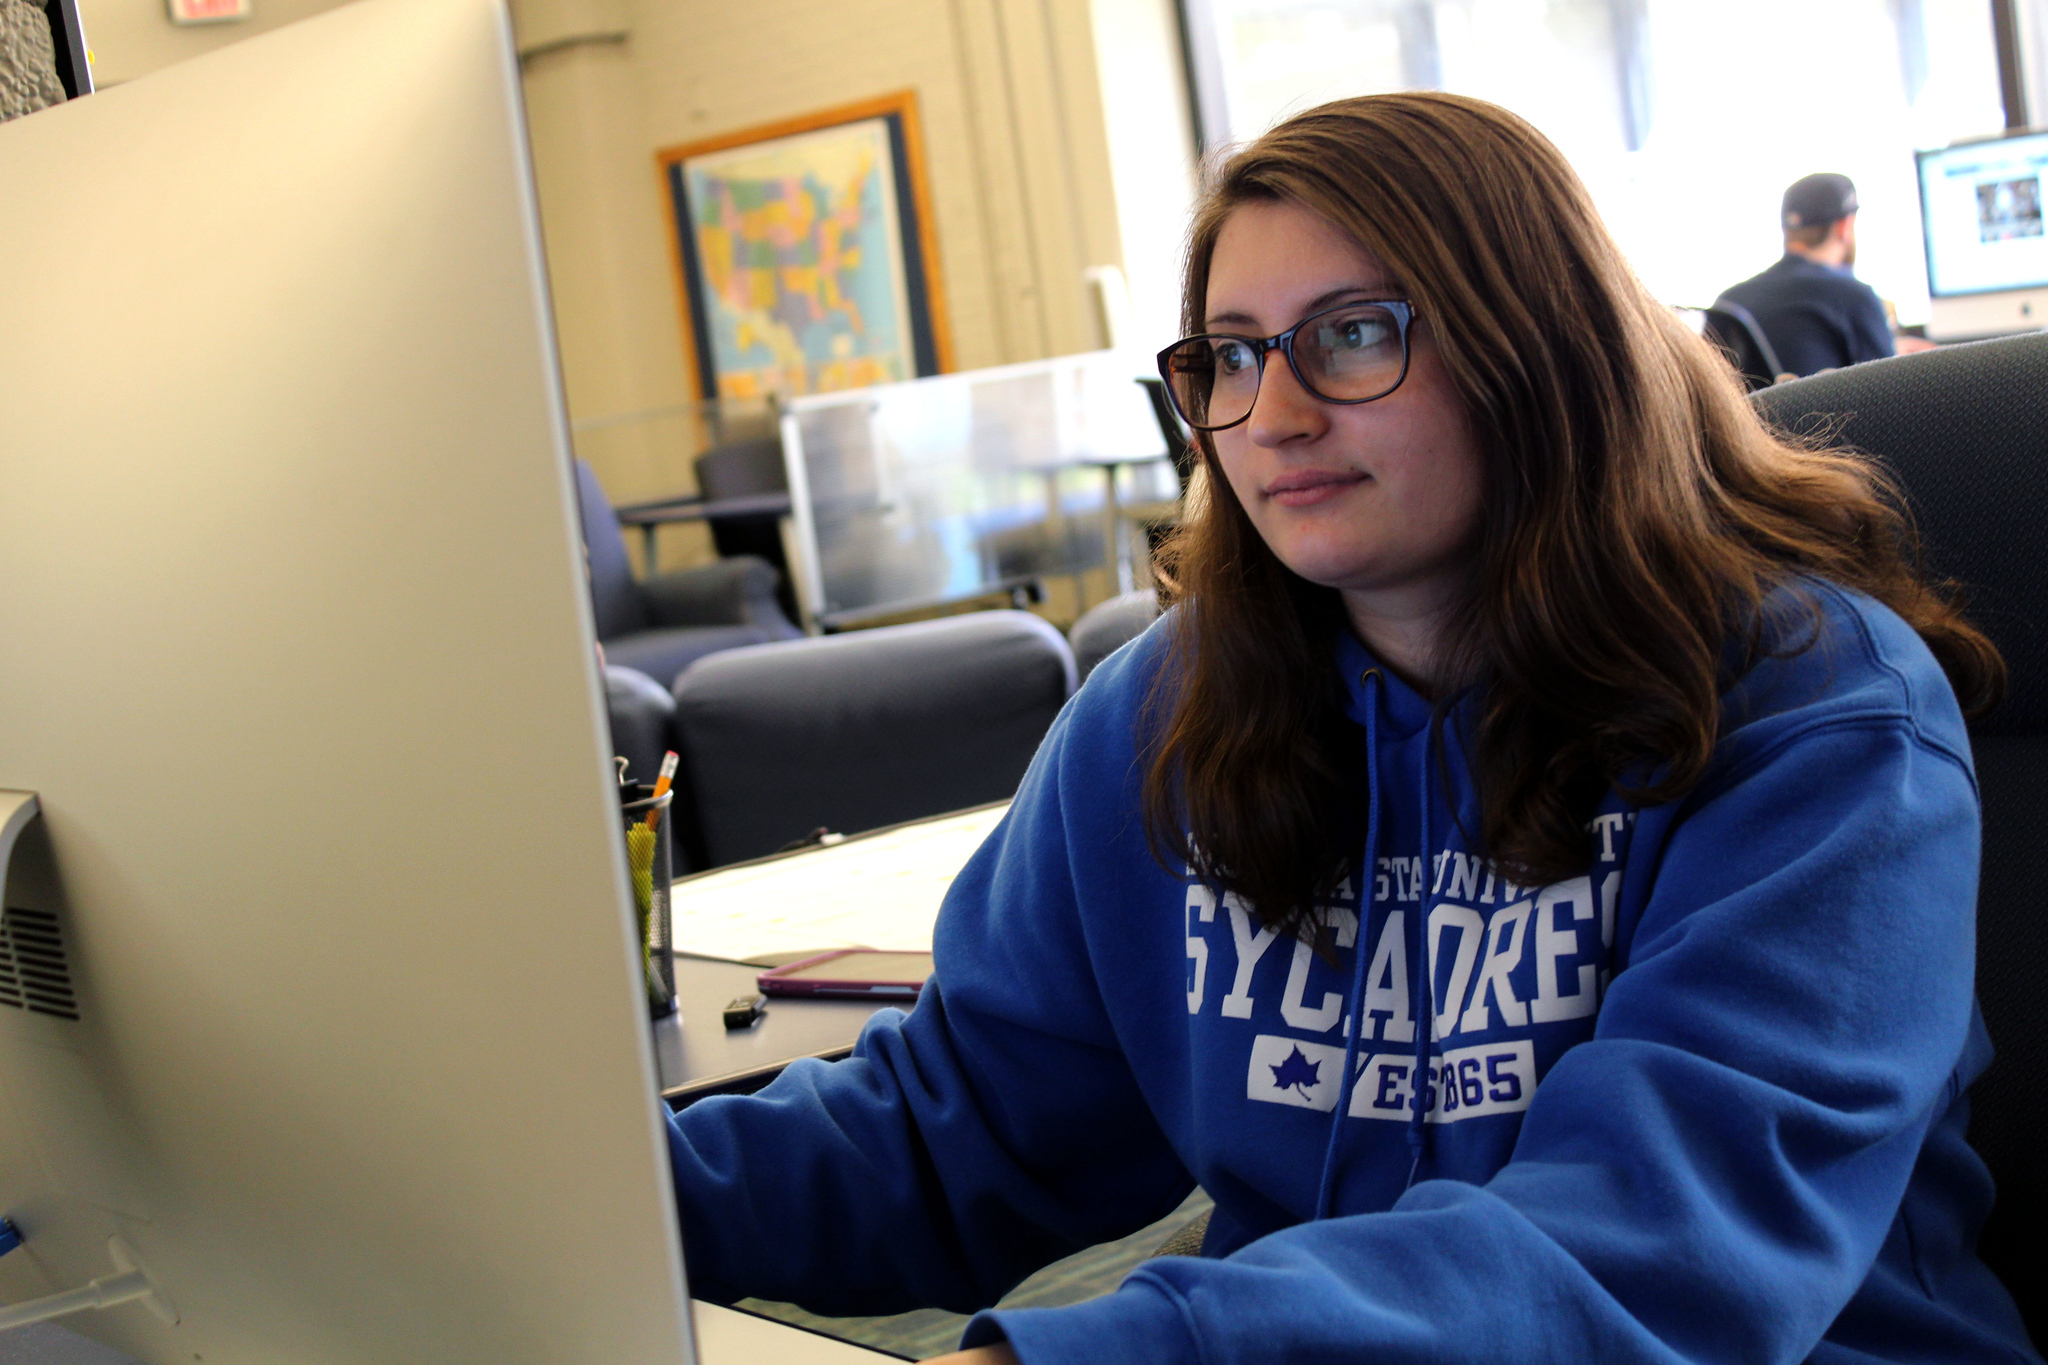 Media student working at Tribune Star upon graduating early